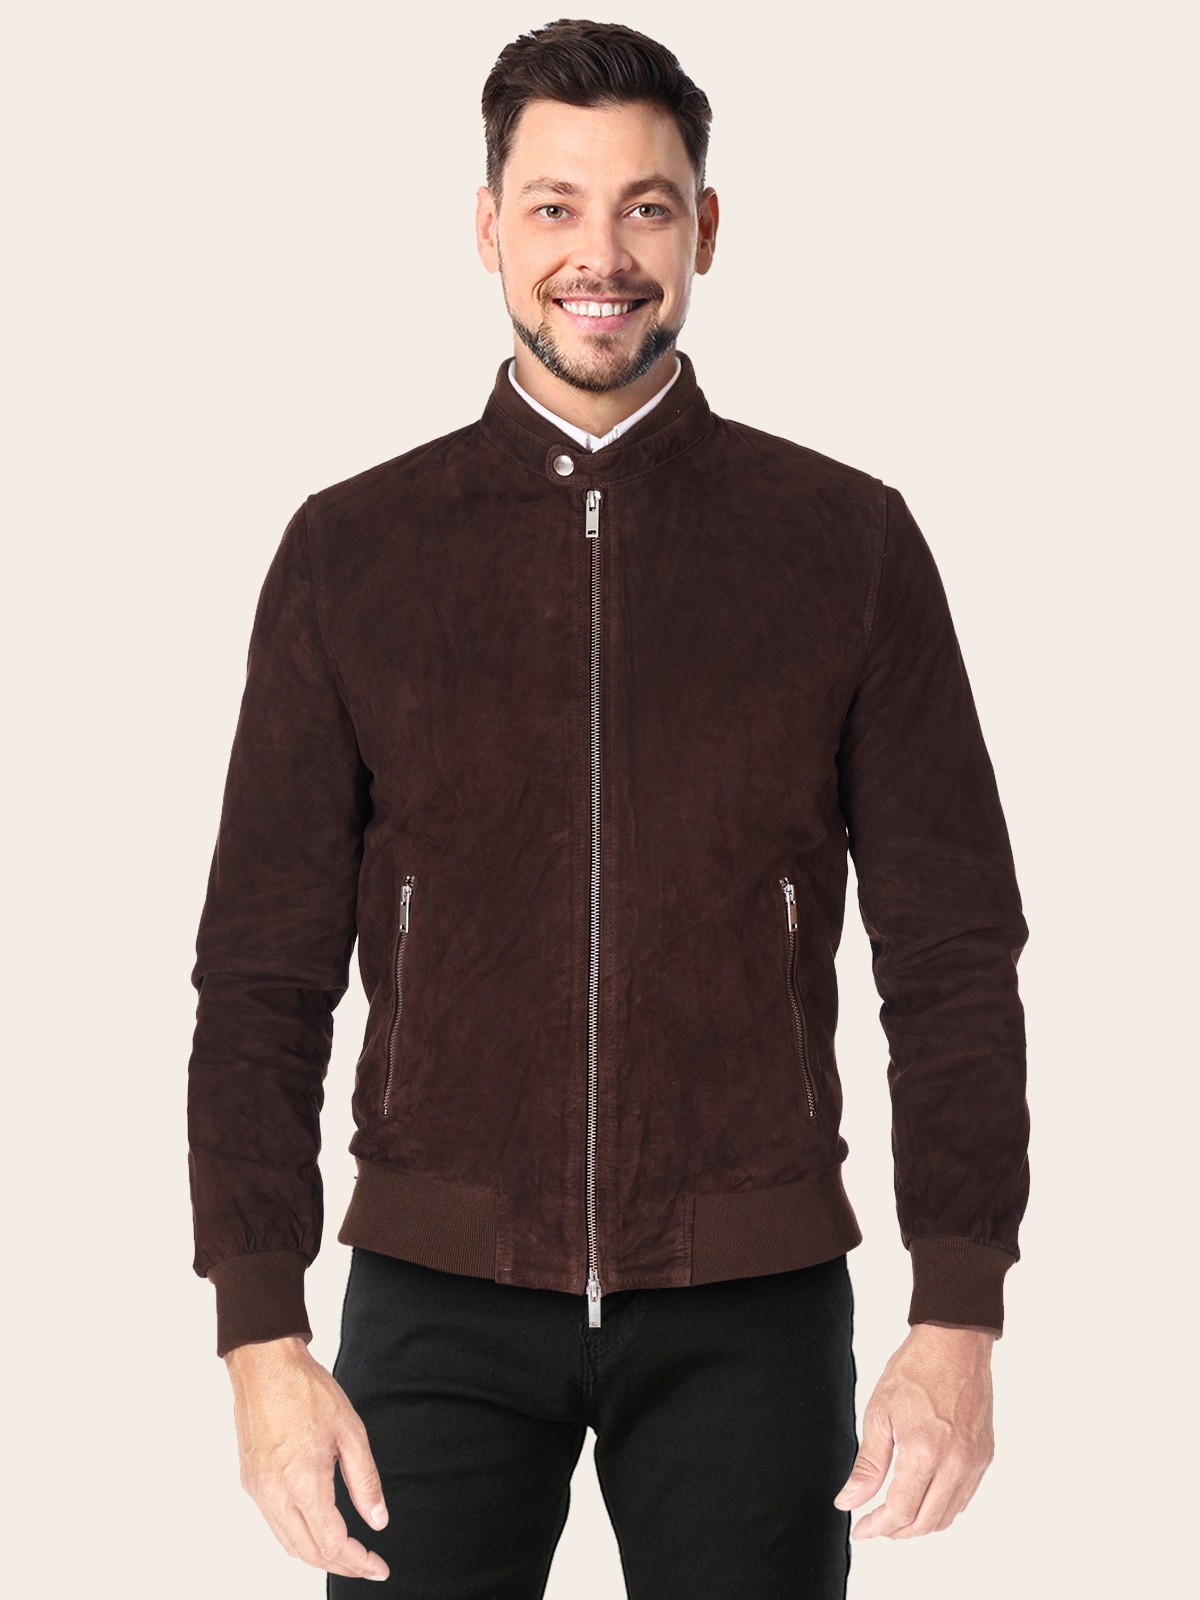 Chocolate-Brown-Leather-Jacket-front-1-1-1-1.jpg